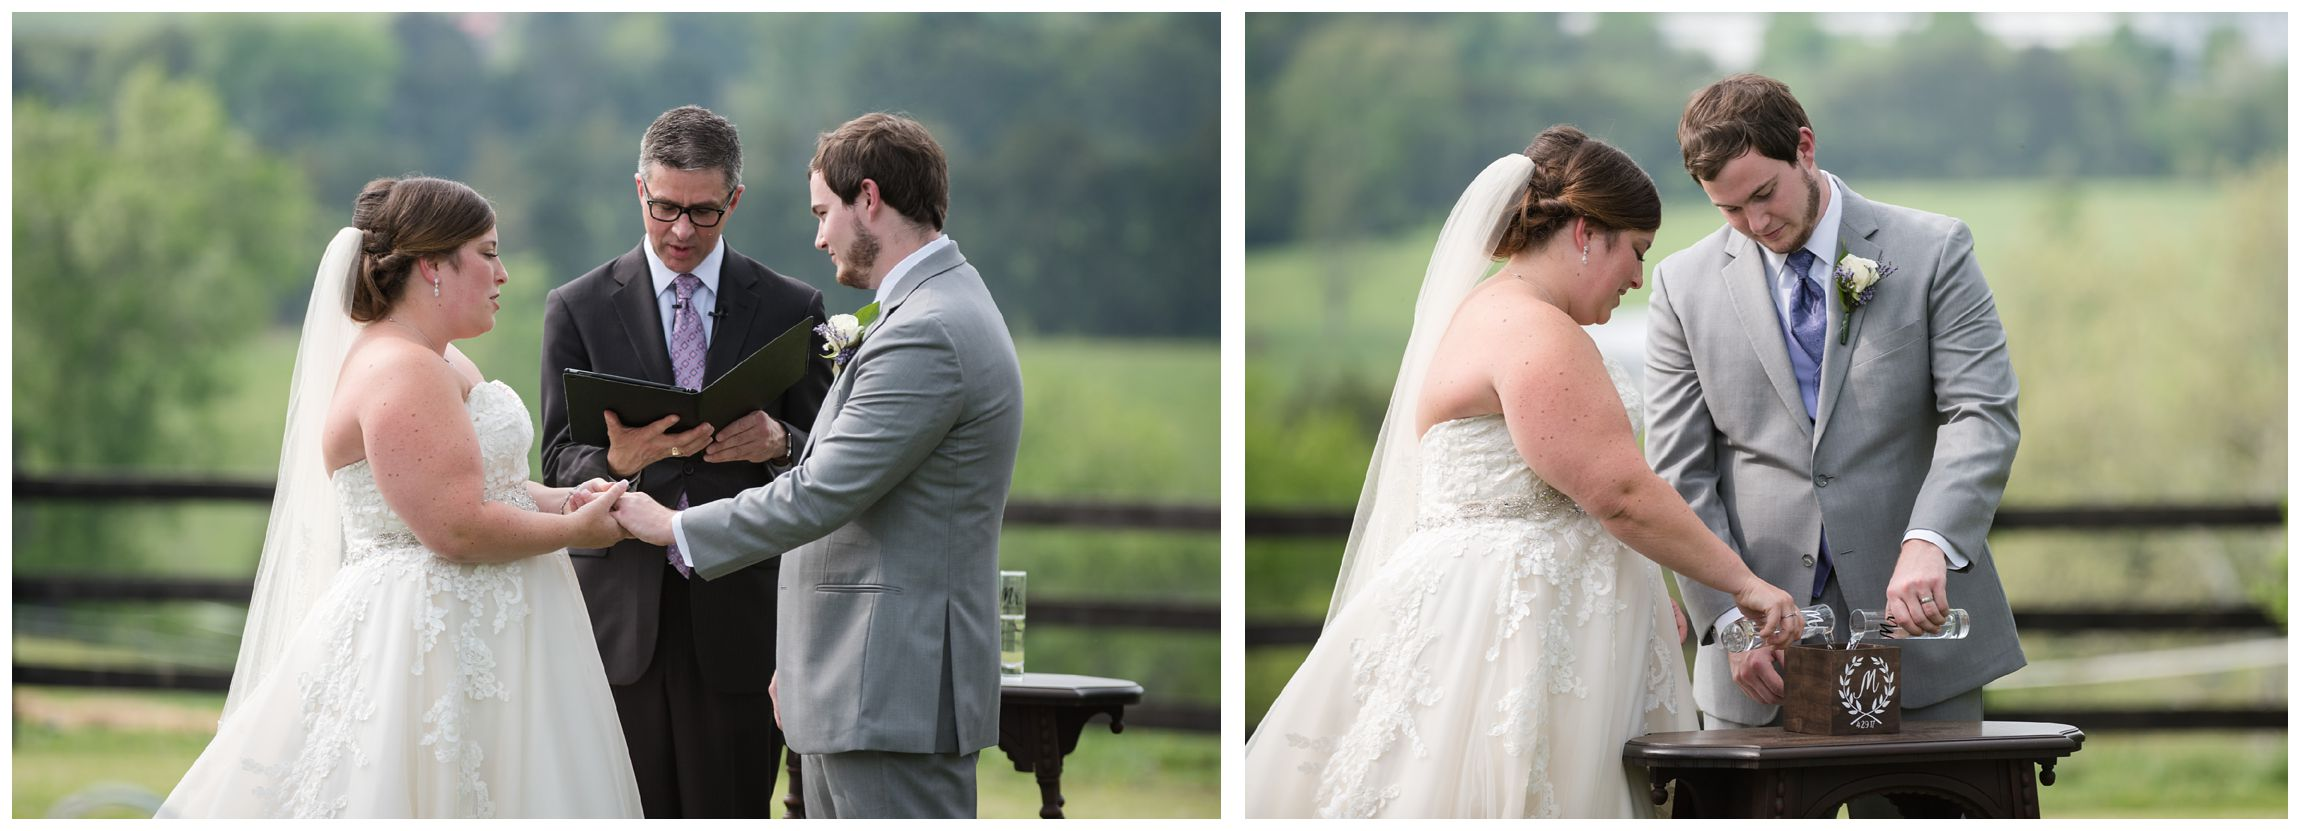 bride and groom during wedding at Wolftrap Farm in Gordonsville, Virginia